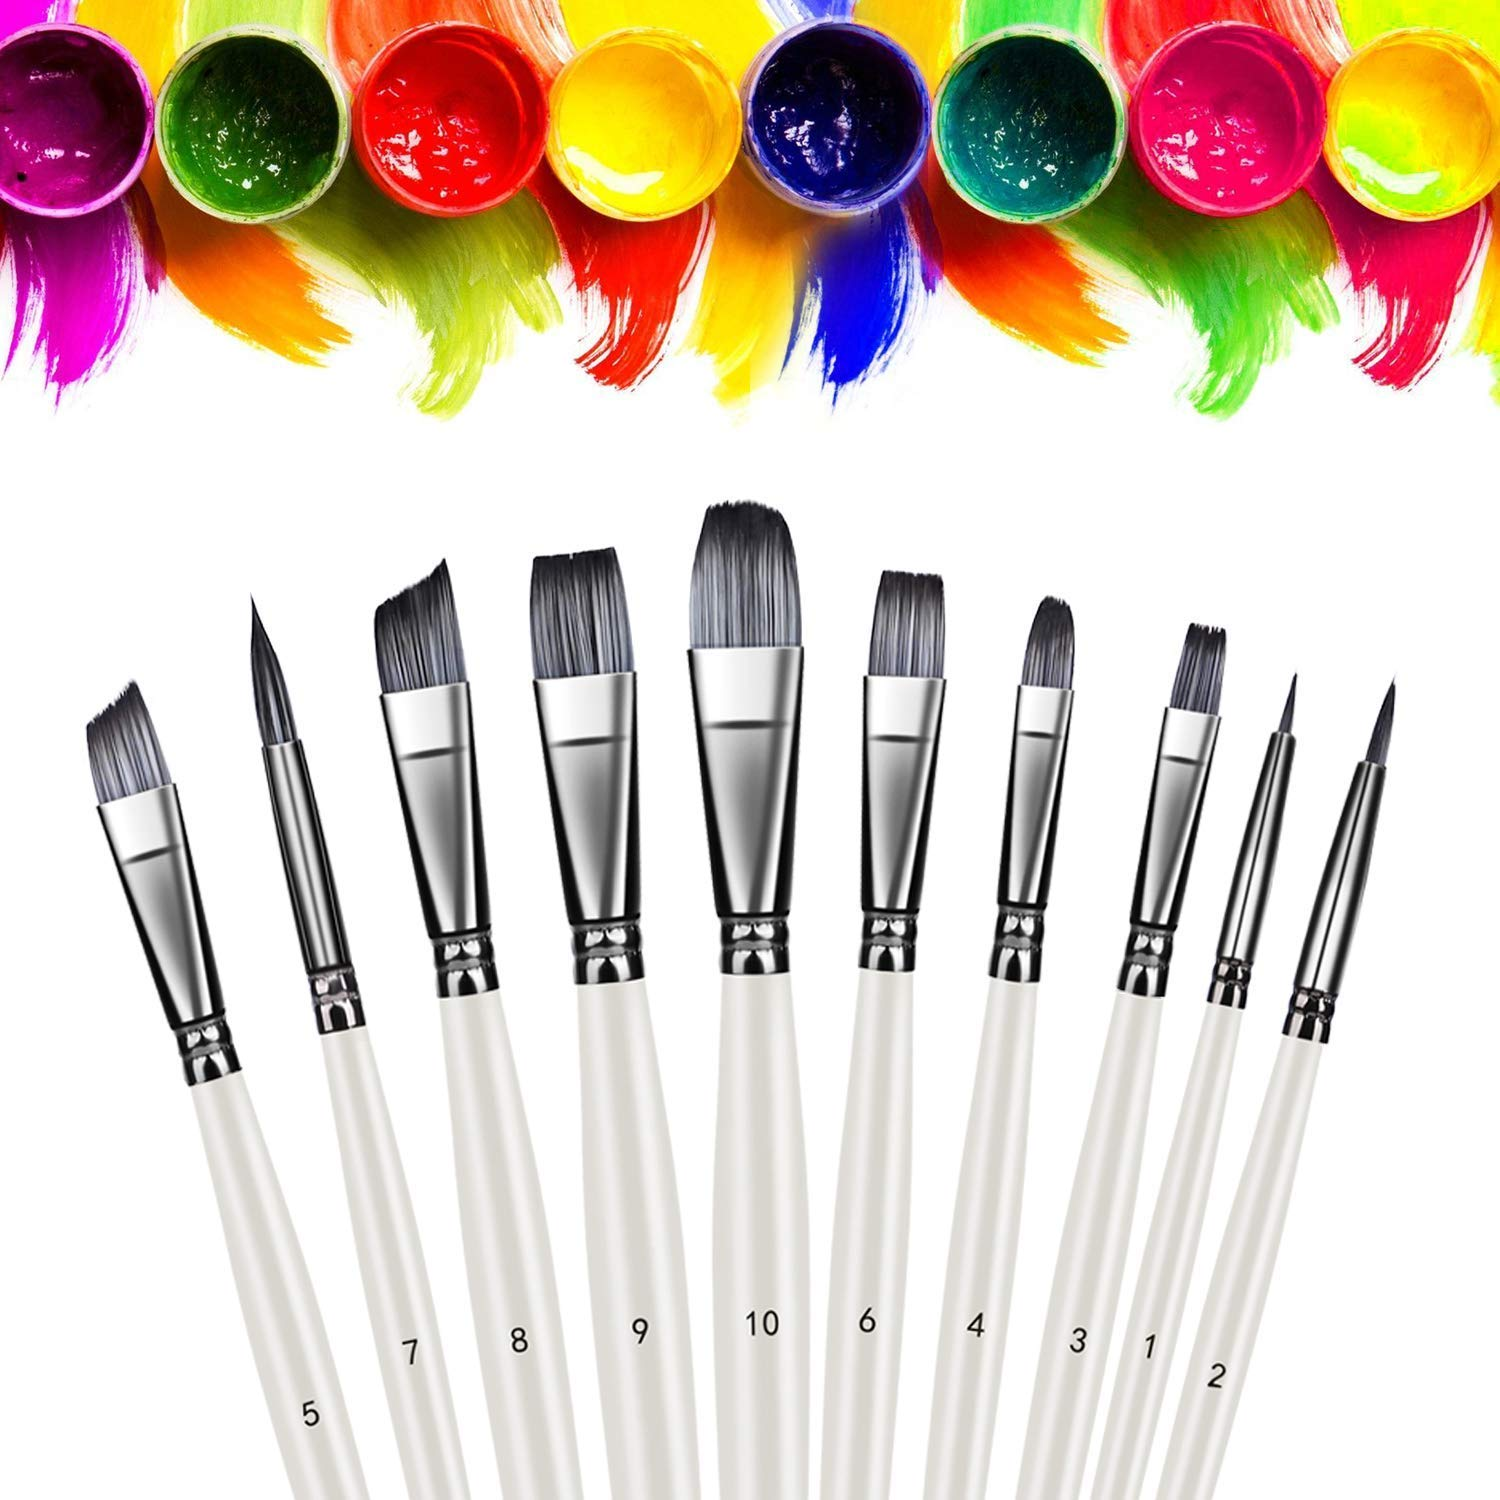 Artist Brush Set Xpassion Handmade Professional Acrylic Paint Brushes 10Pieces for Acrylic Watercolor Oil Painting,Pearl White